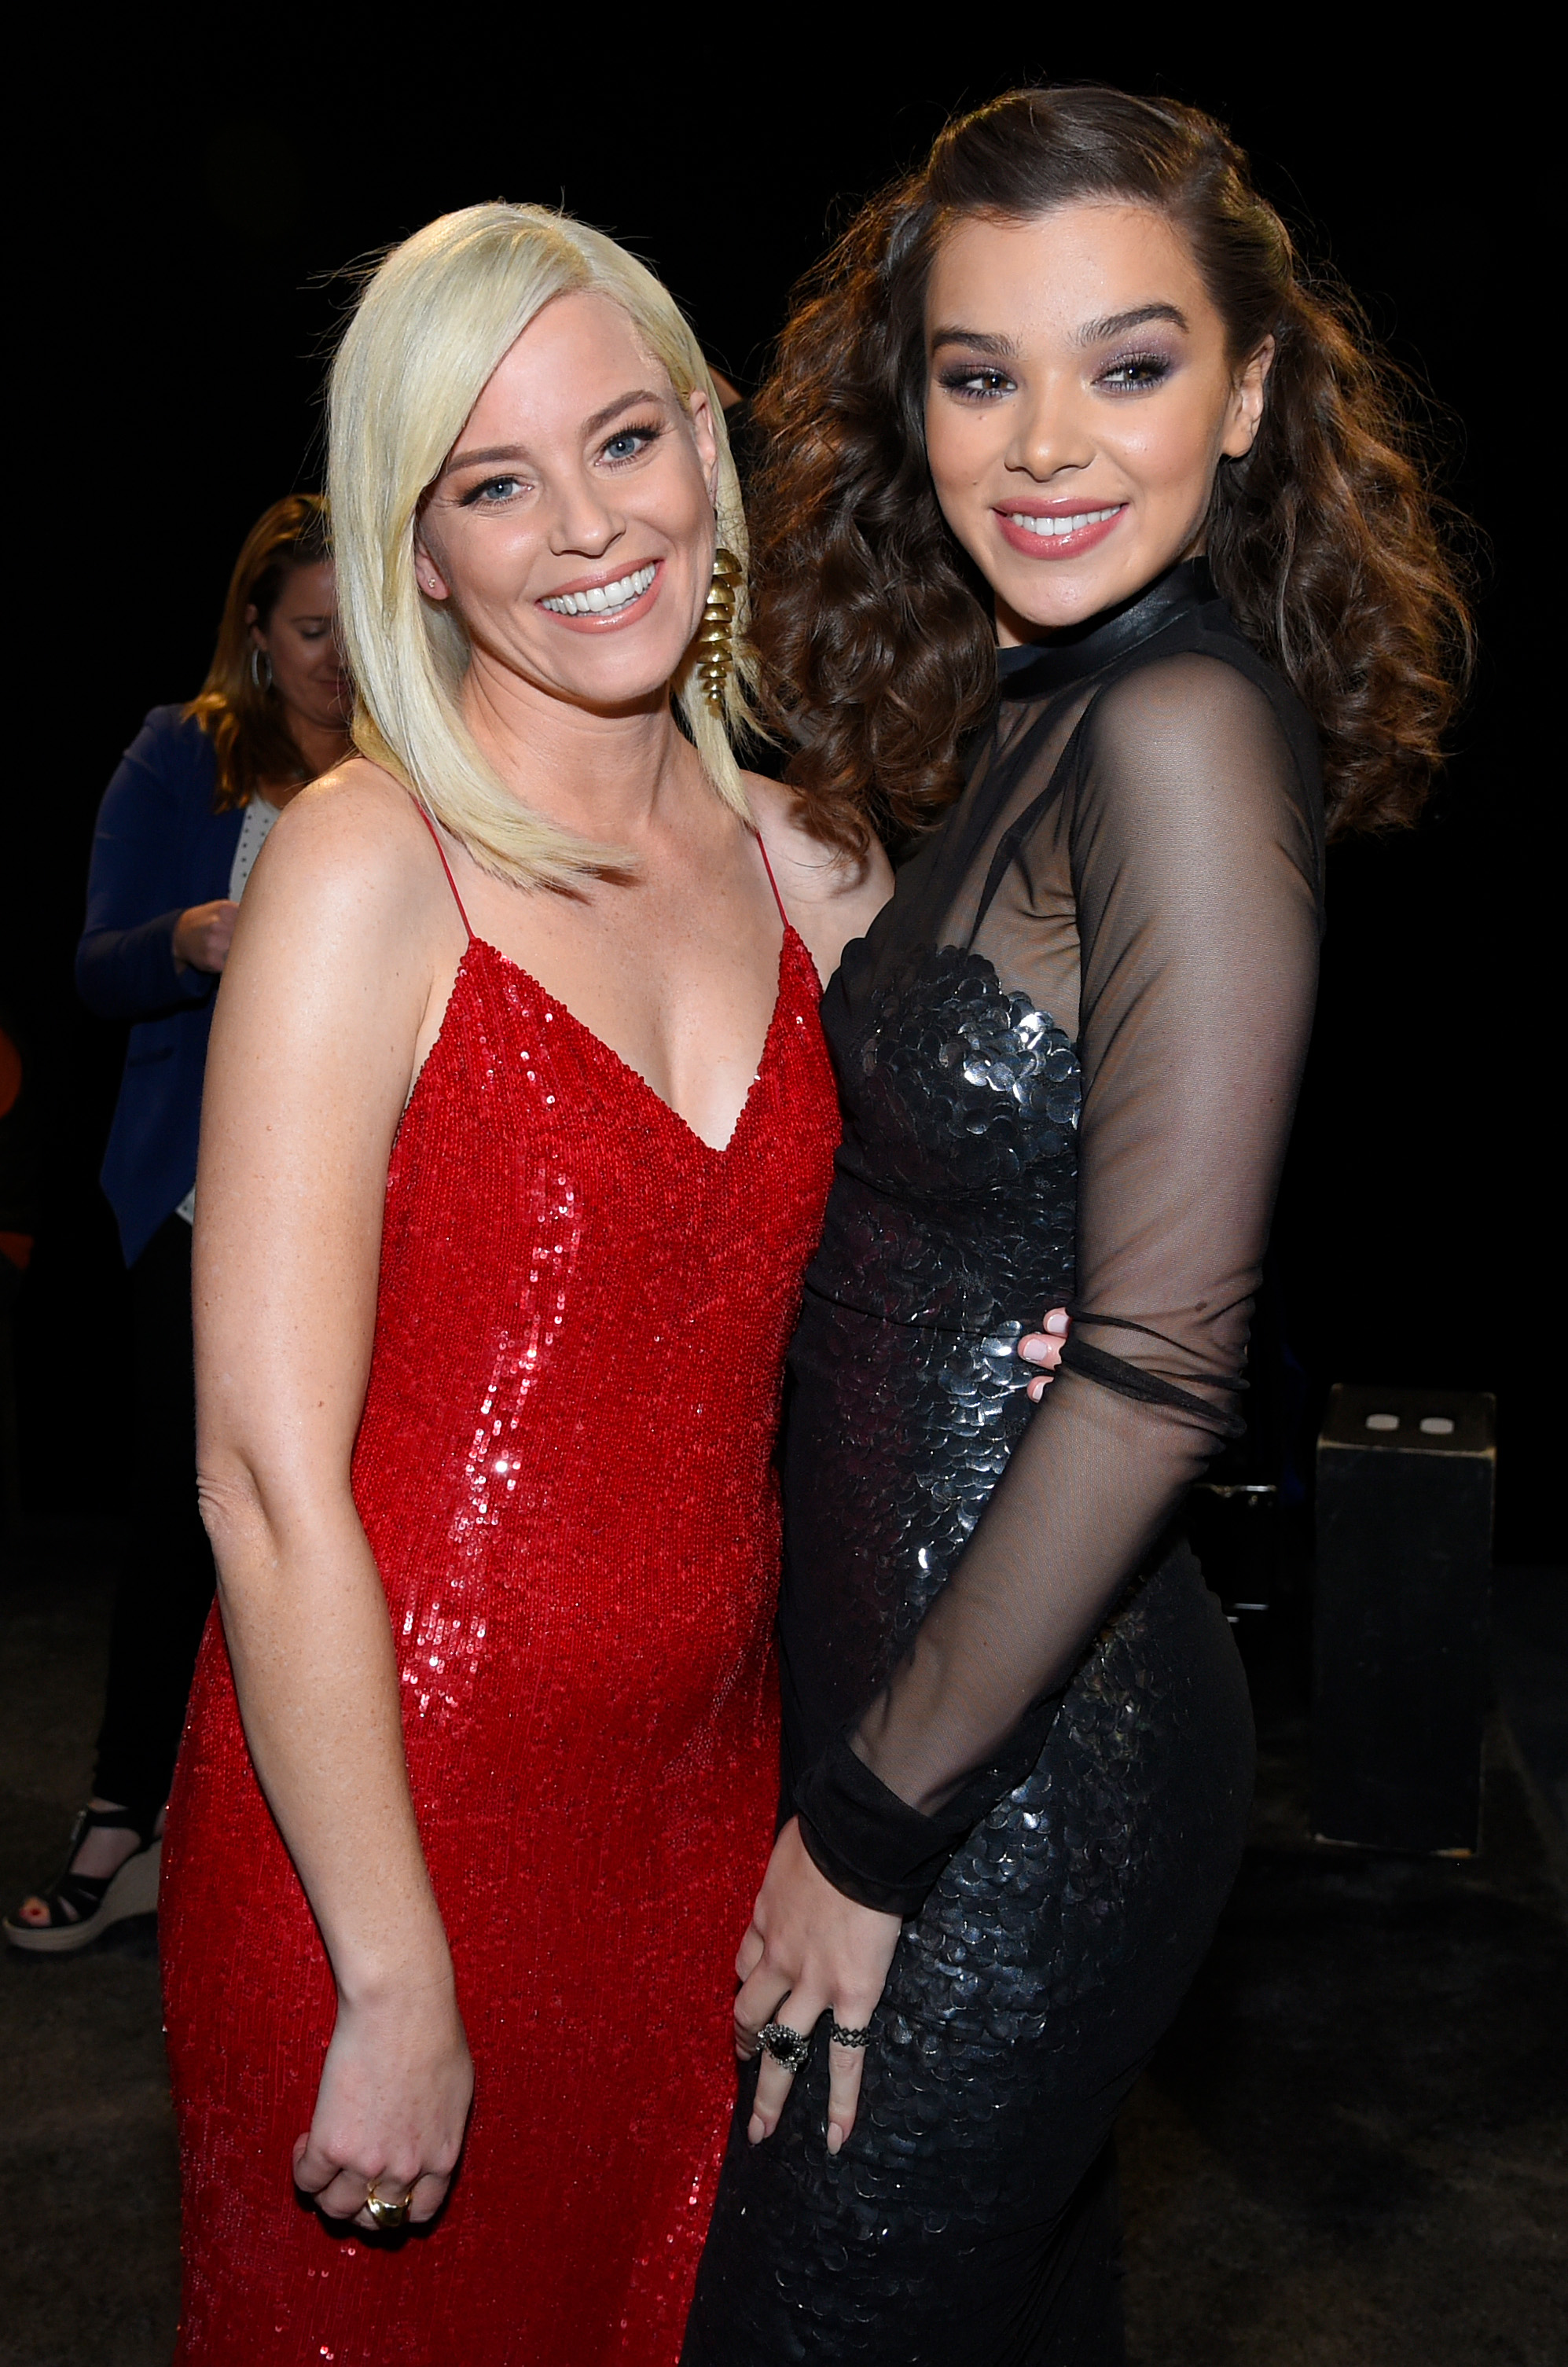 Elizabeth Banks and Hailee Steinfeld'Pitch Perfect 3' film premiere, Arrivals, Los Angeles, USA - 12 Dec 2017